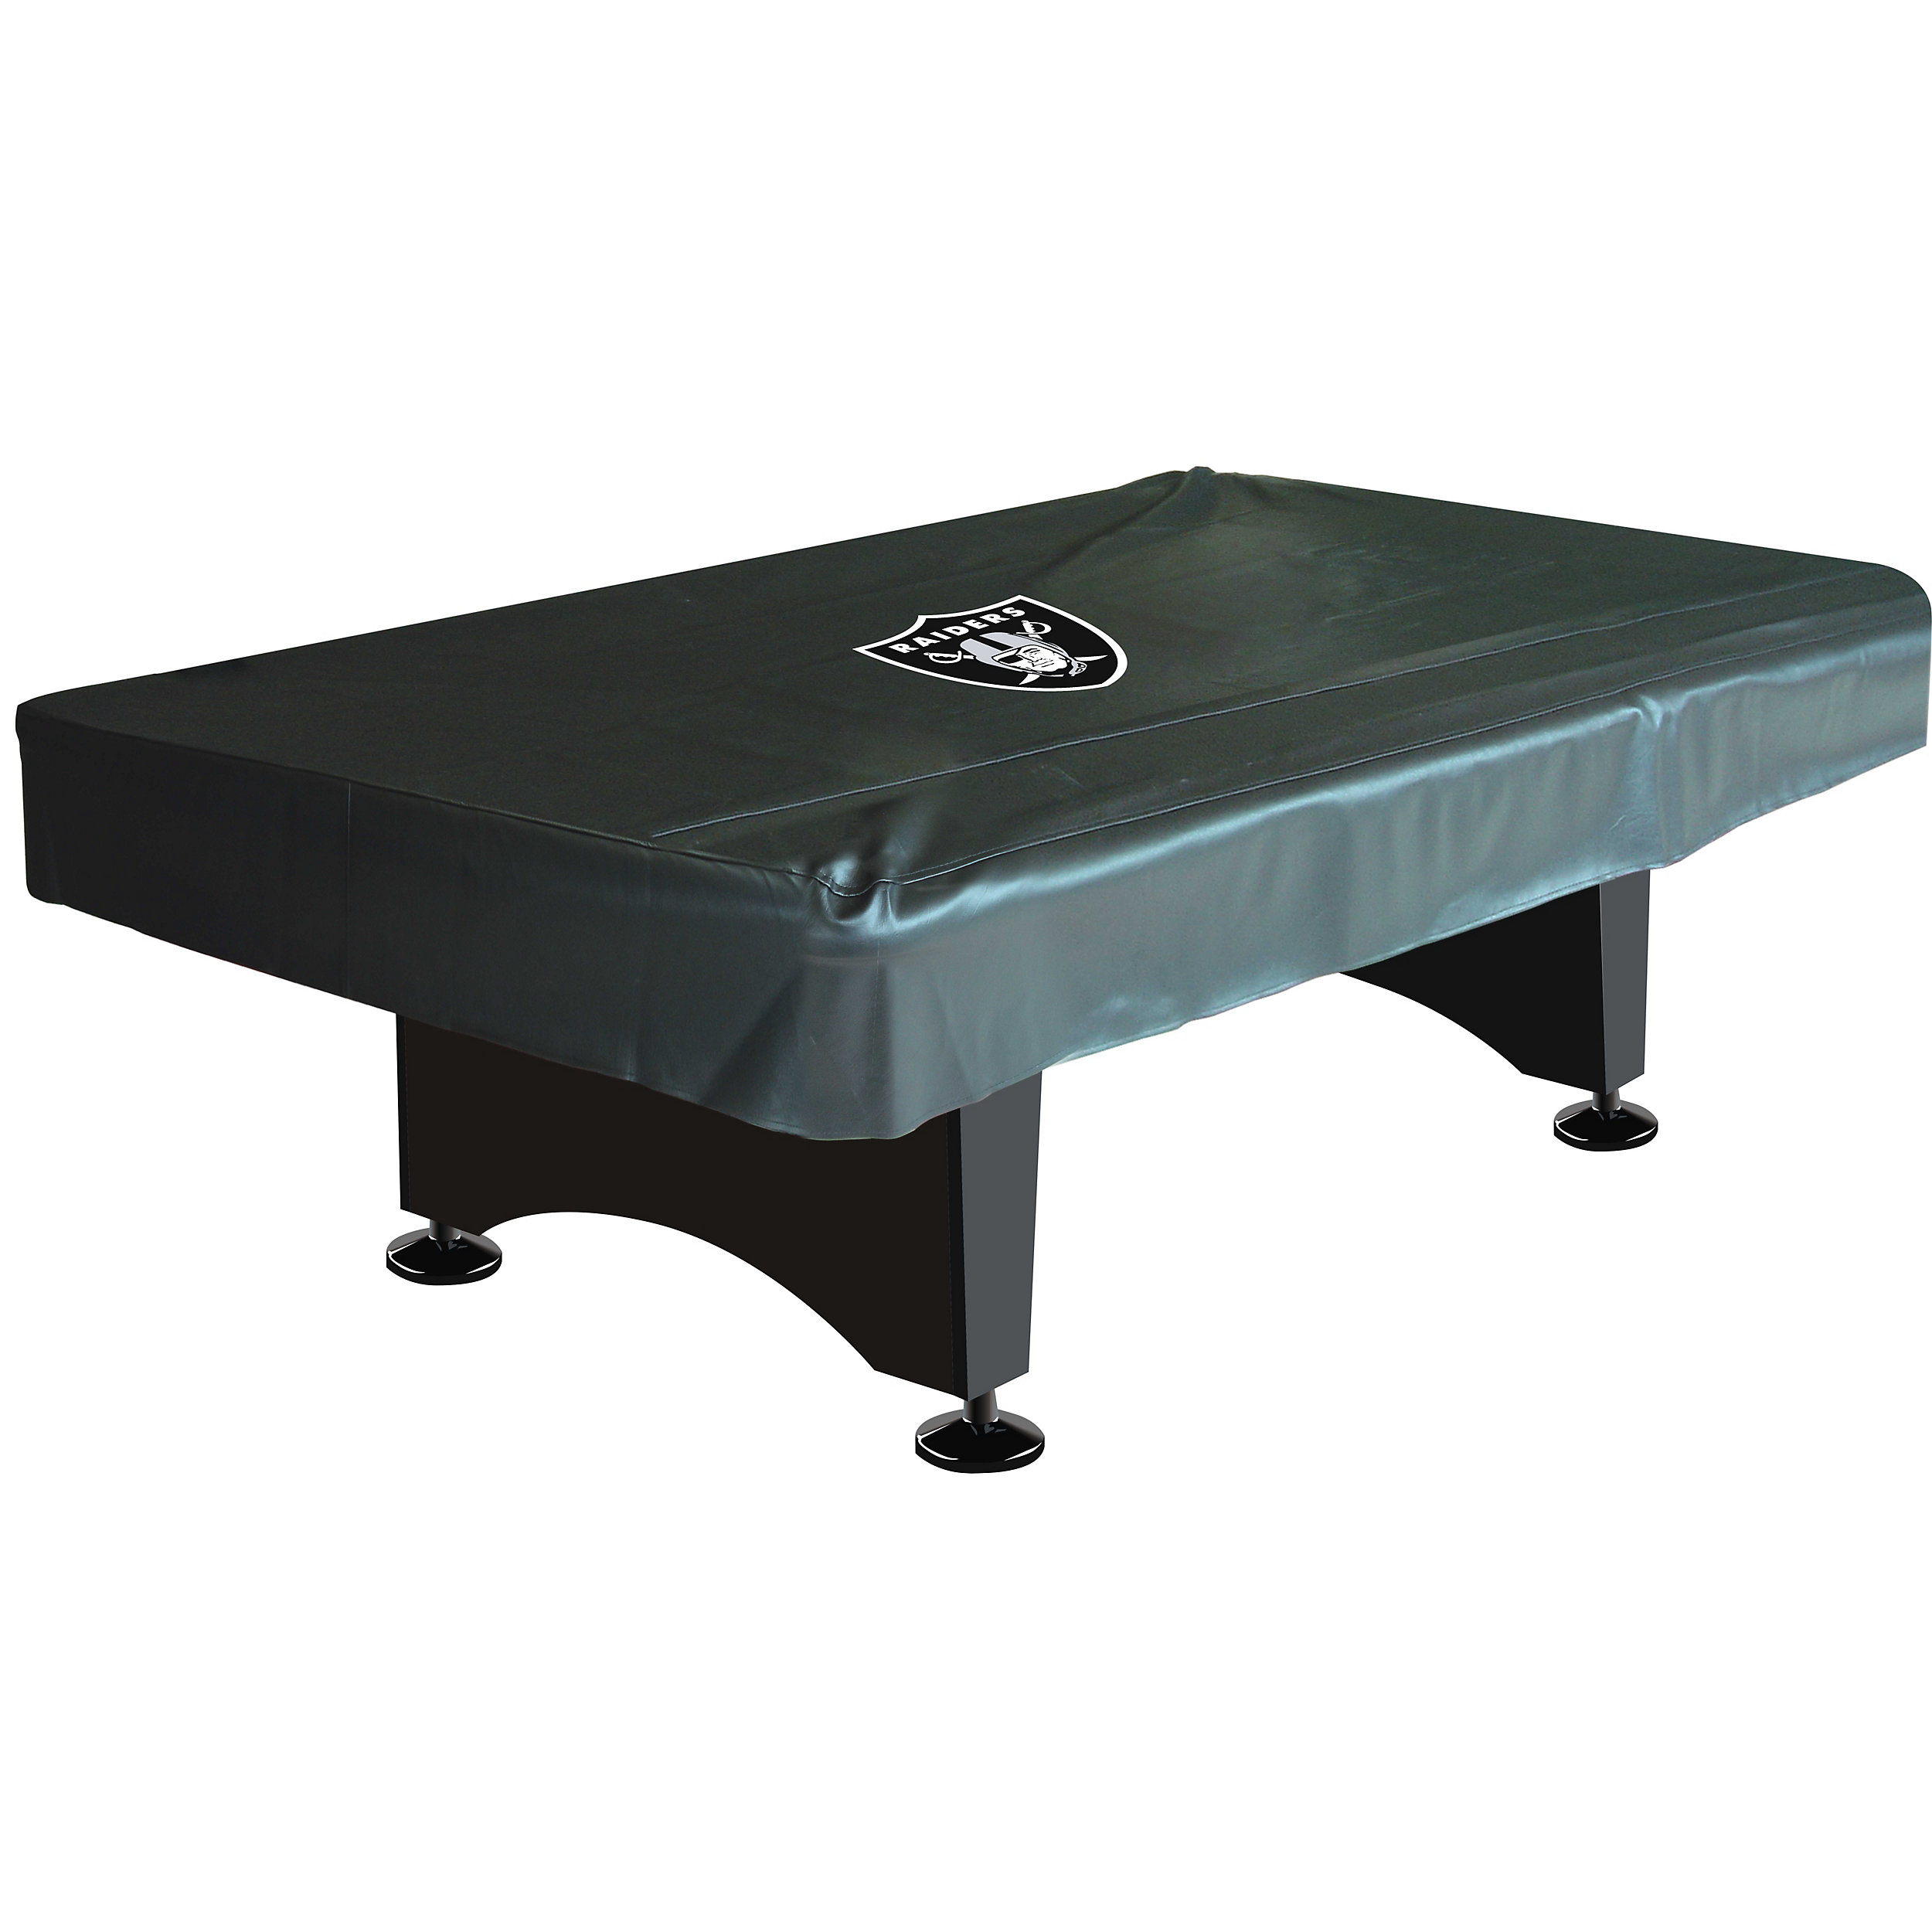 Oakland Raiders Deluxe Ft Pool Table Cover - Raiders pool table